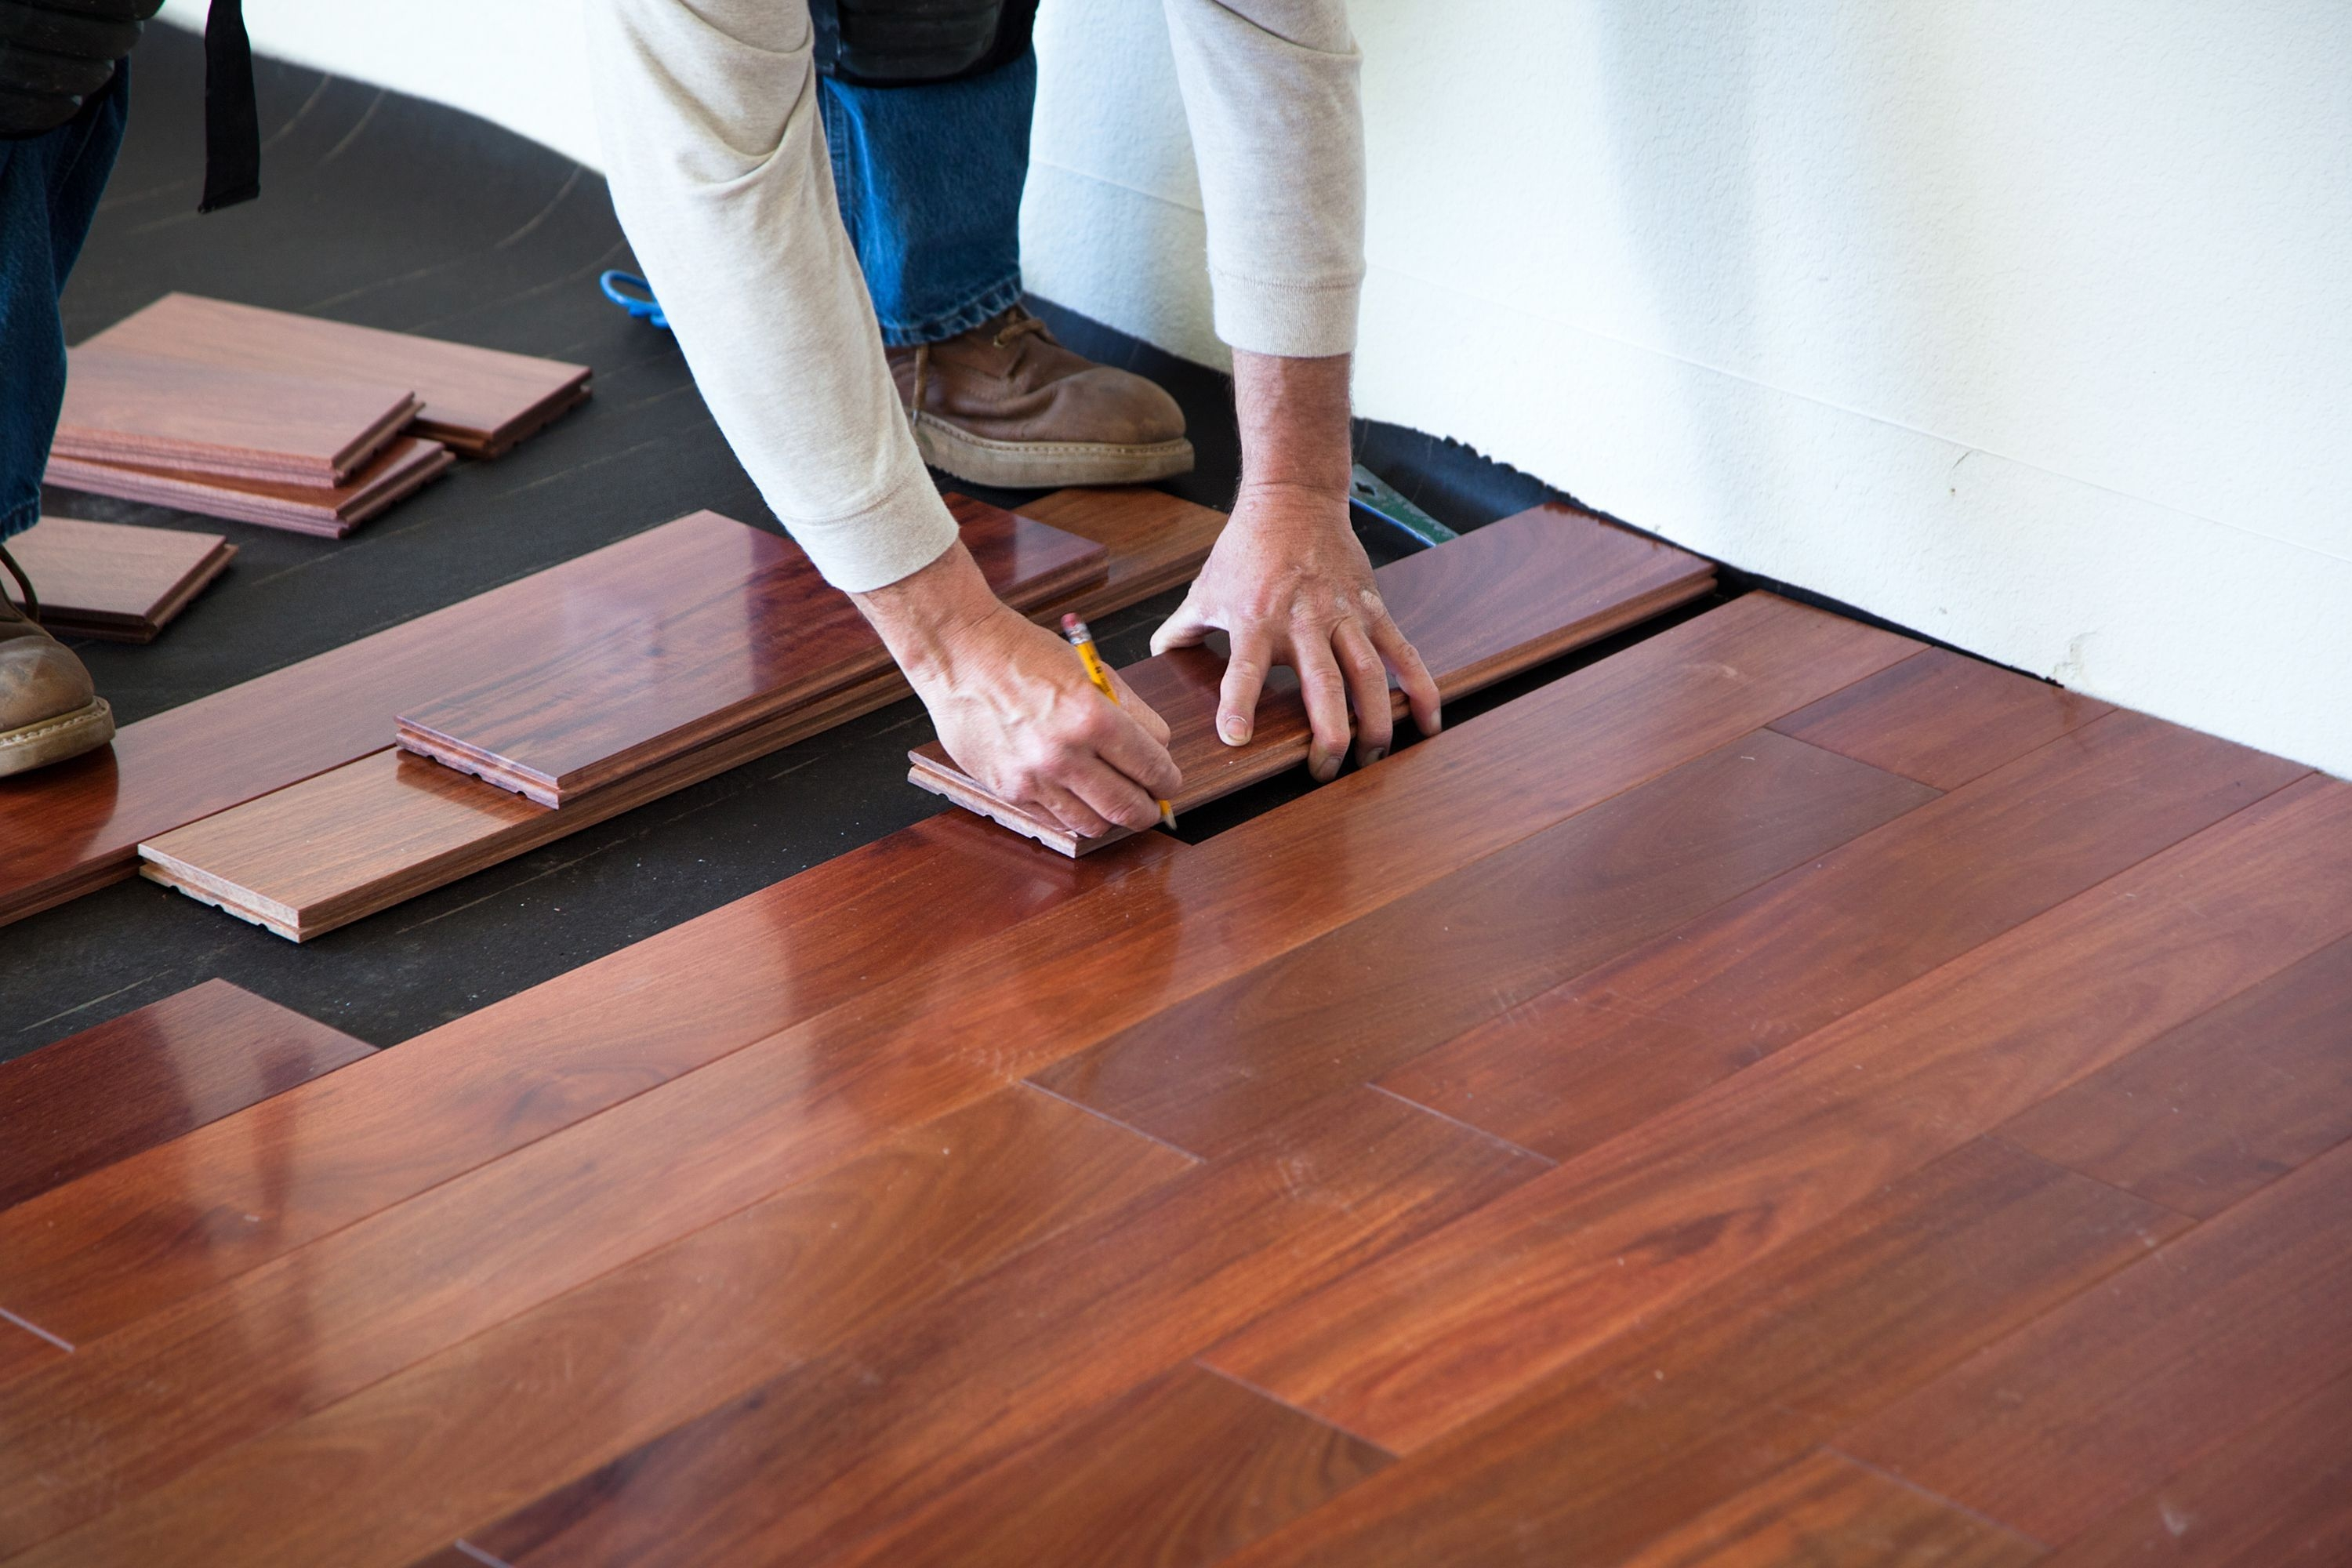 Leveling Wood Floors For Tilefloor leveling compound for wood subfloors 88 cool ideas for